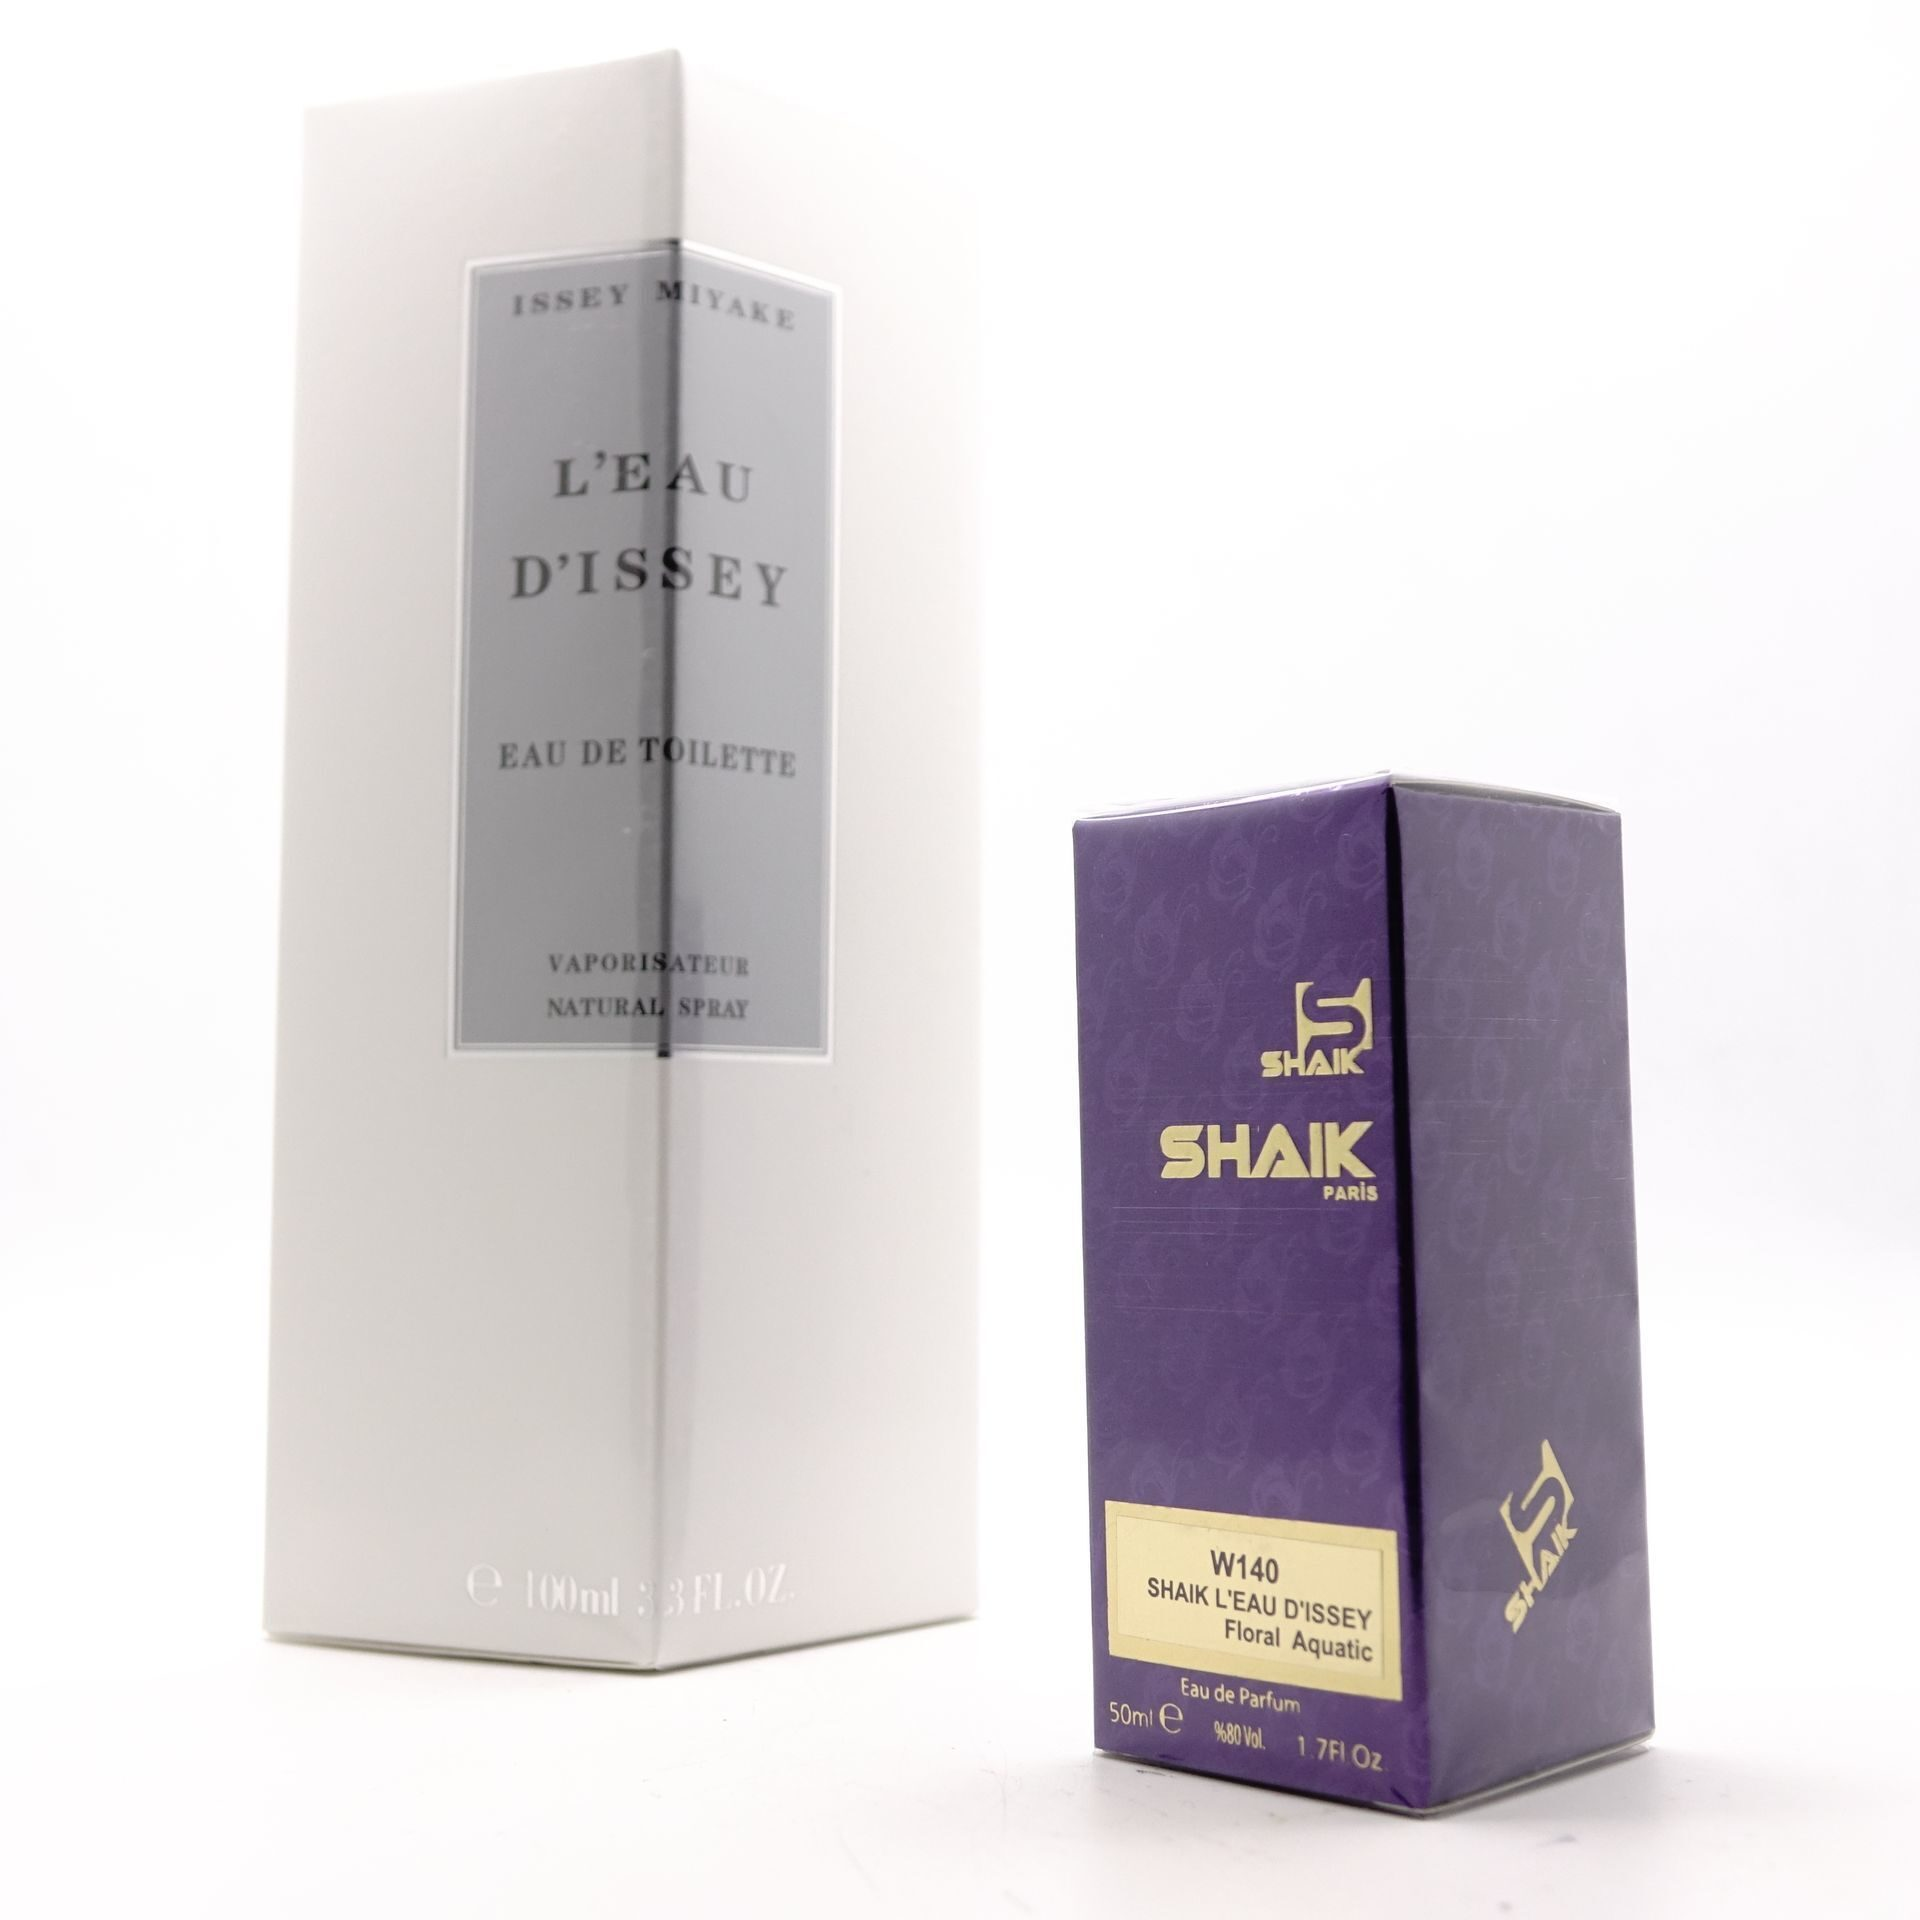 SHAIK W 140 (ISSEY MIYAKE L'EAU D'ISSEY FOR WOMEN) 50ml